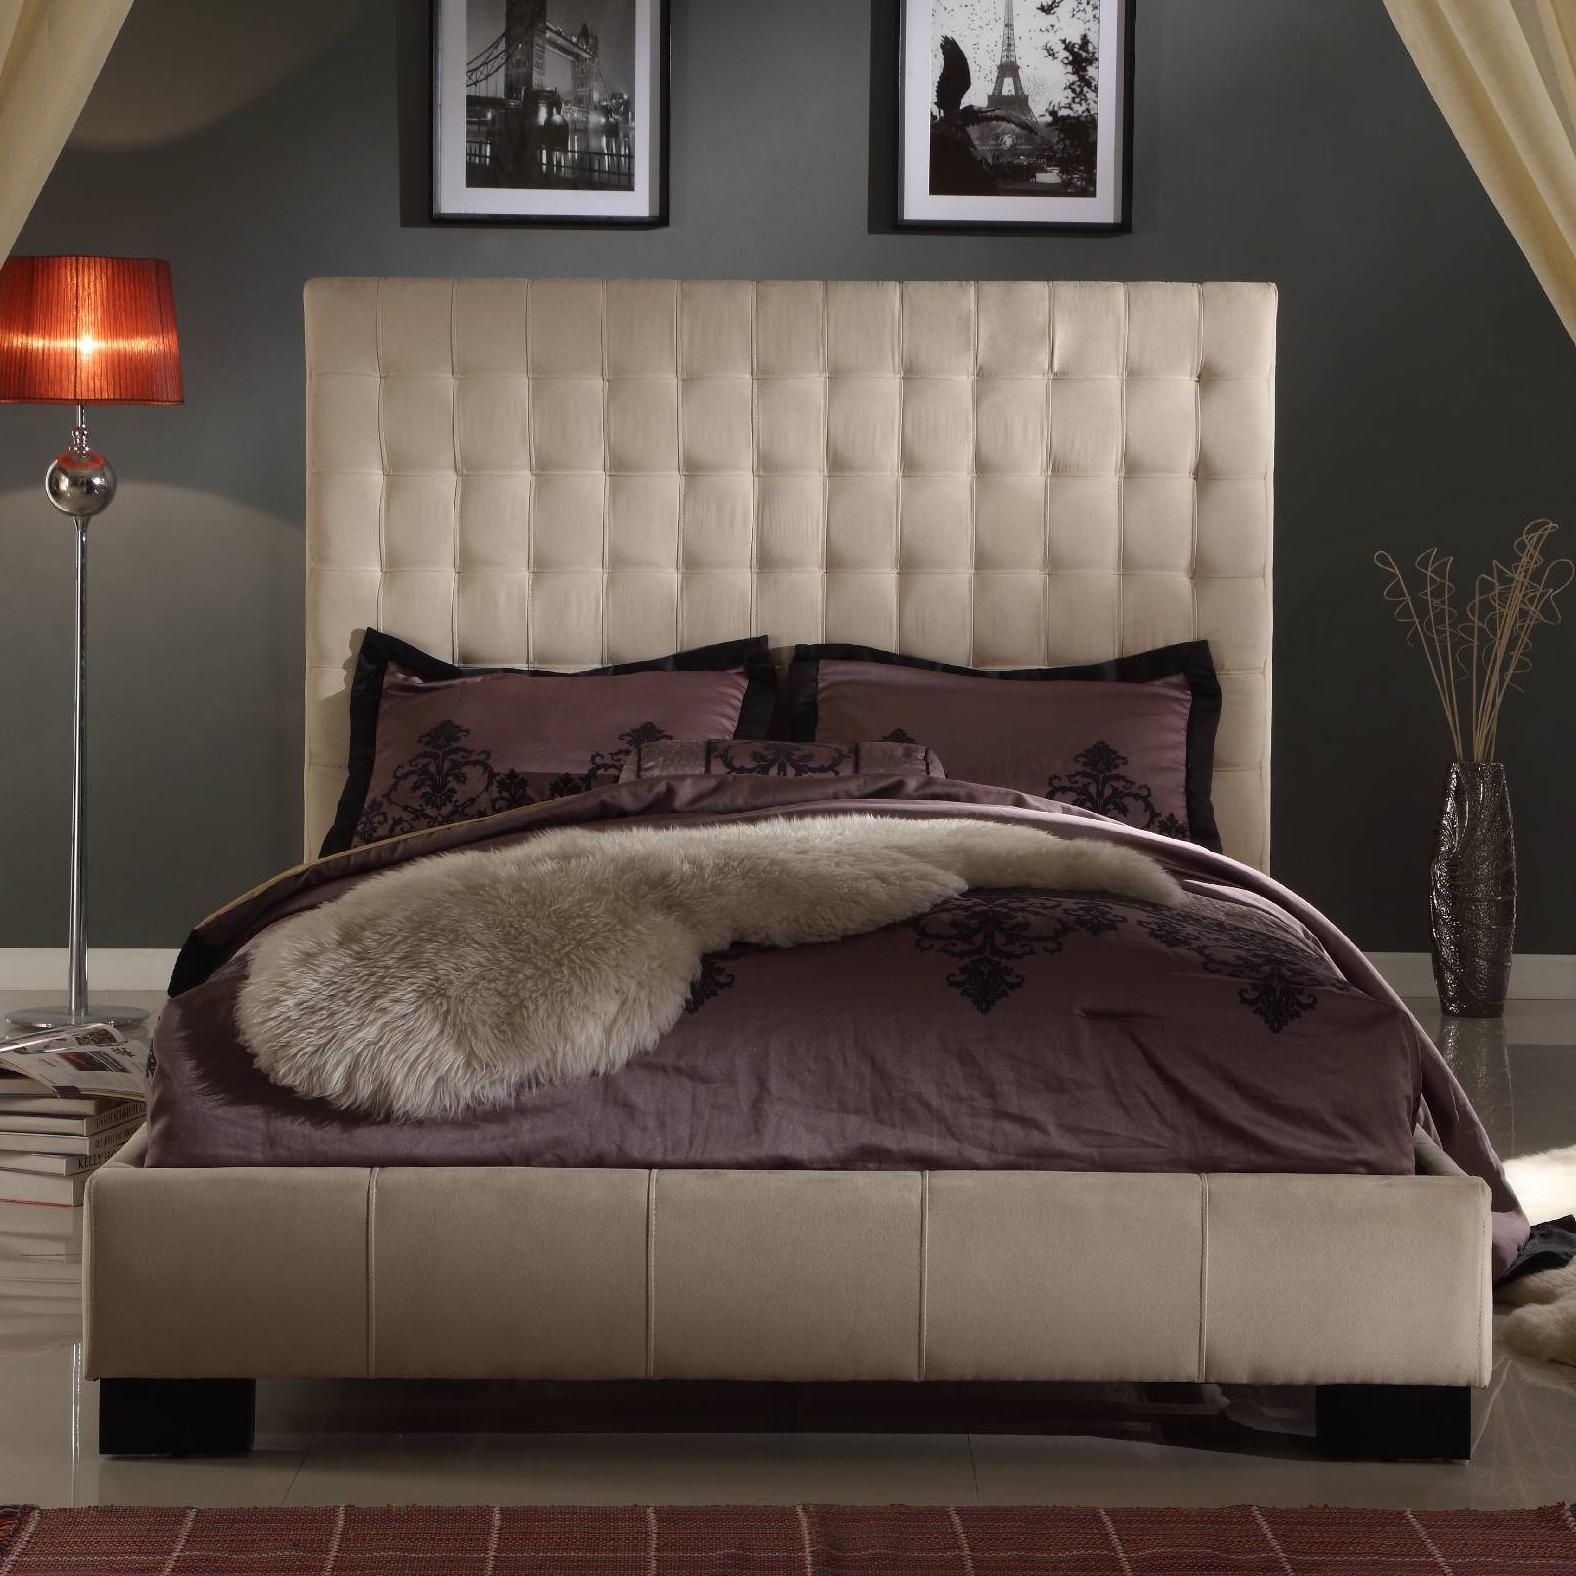 Cute Upholstered King Bedroom Set Painting